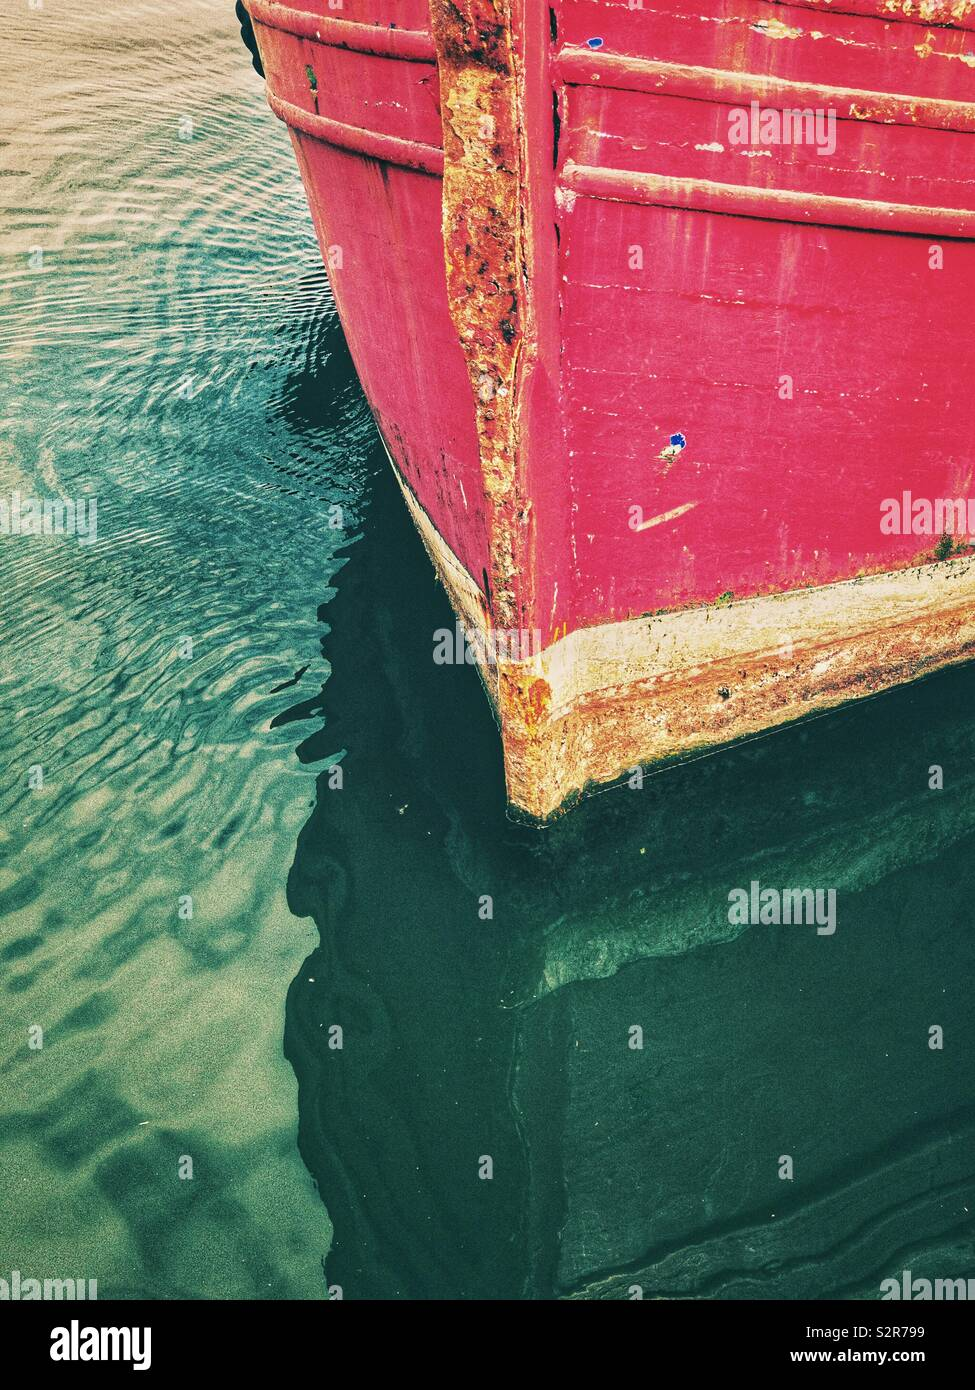 Now of old red boat with reflection in the water. - Stock Image